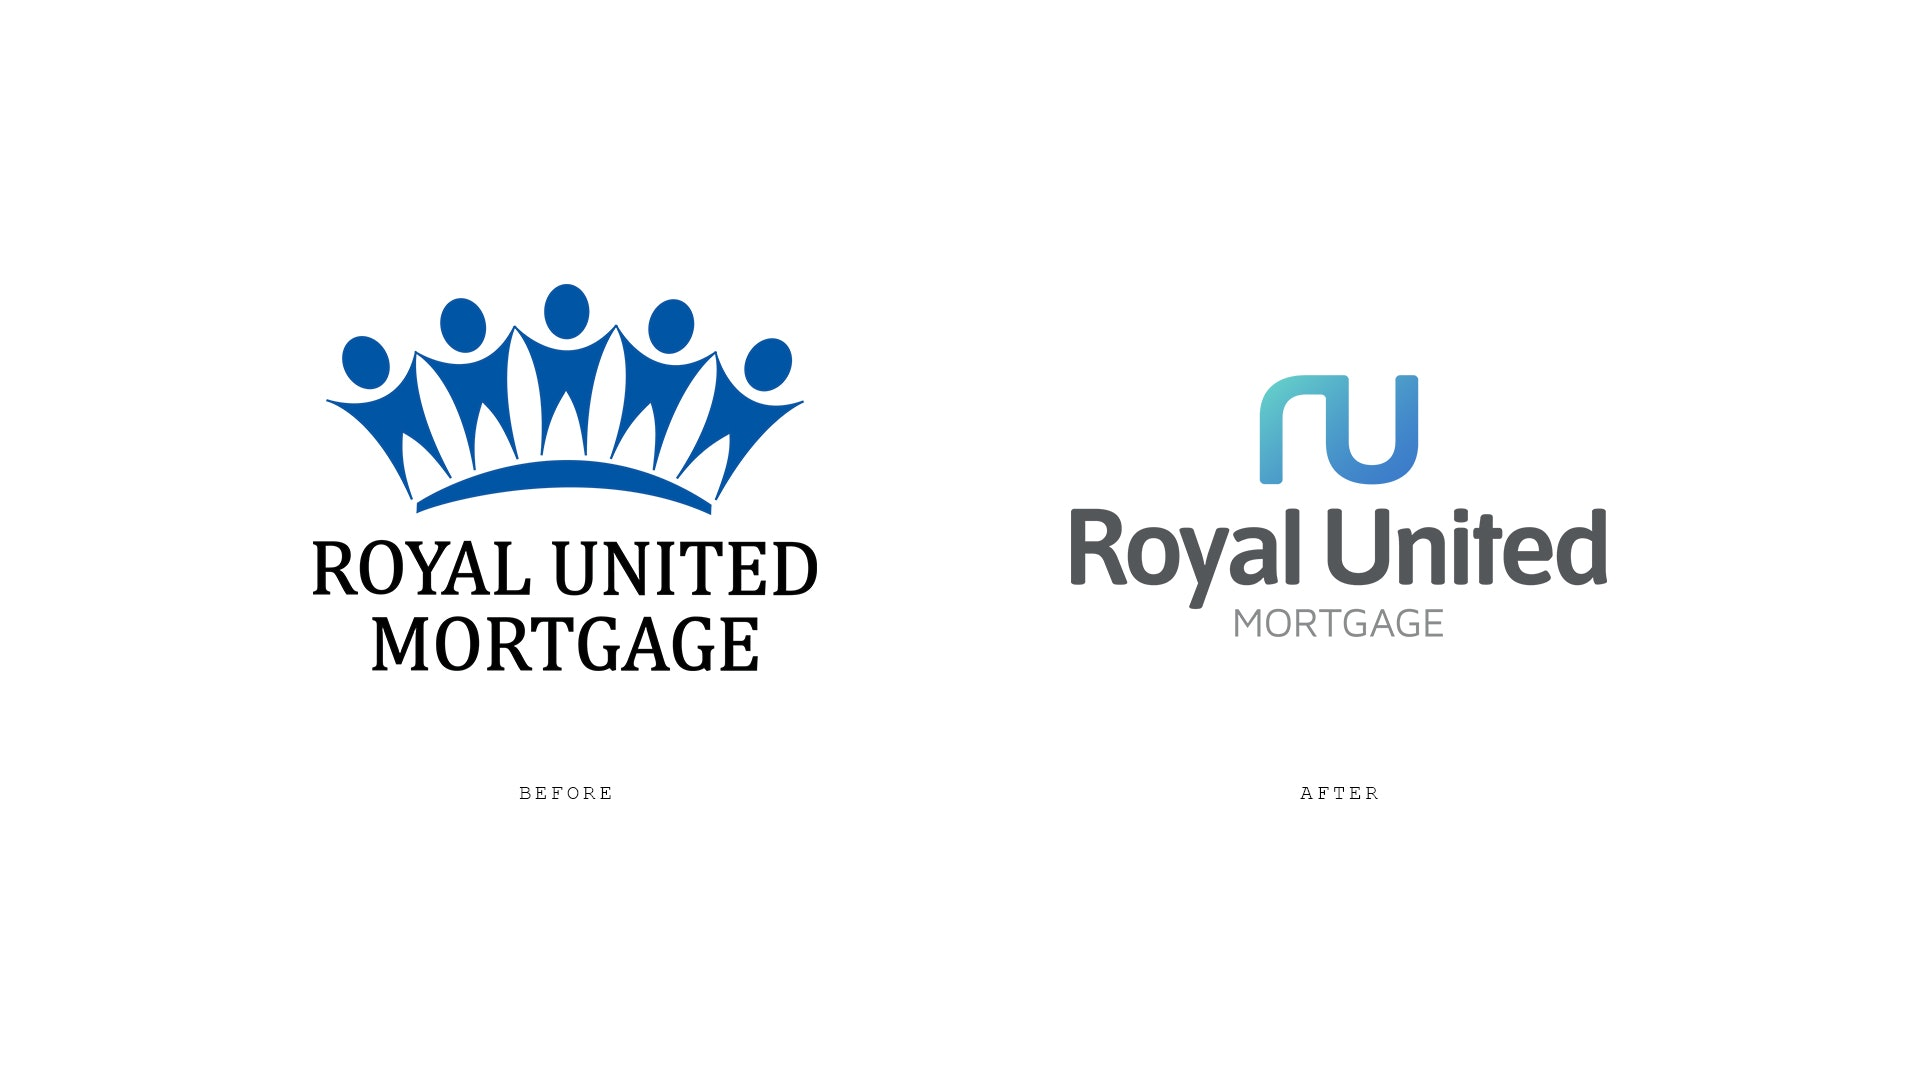 Royal United Mortgage Logo Before and After